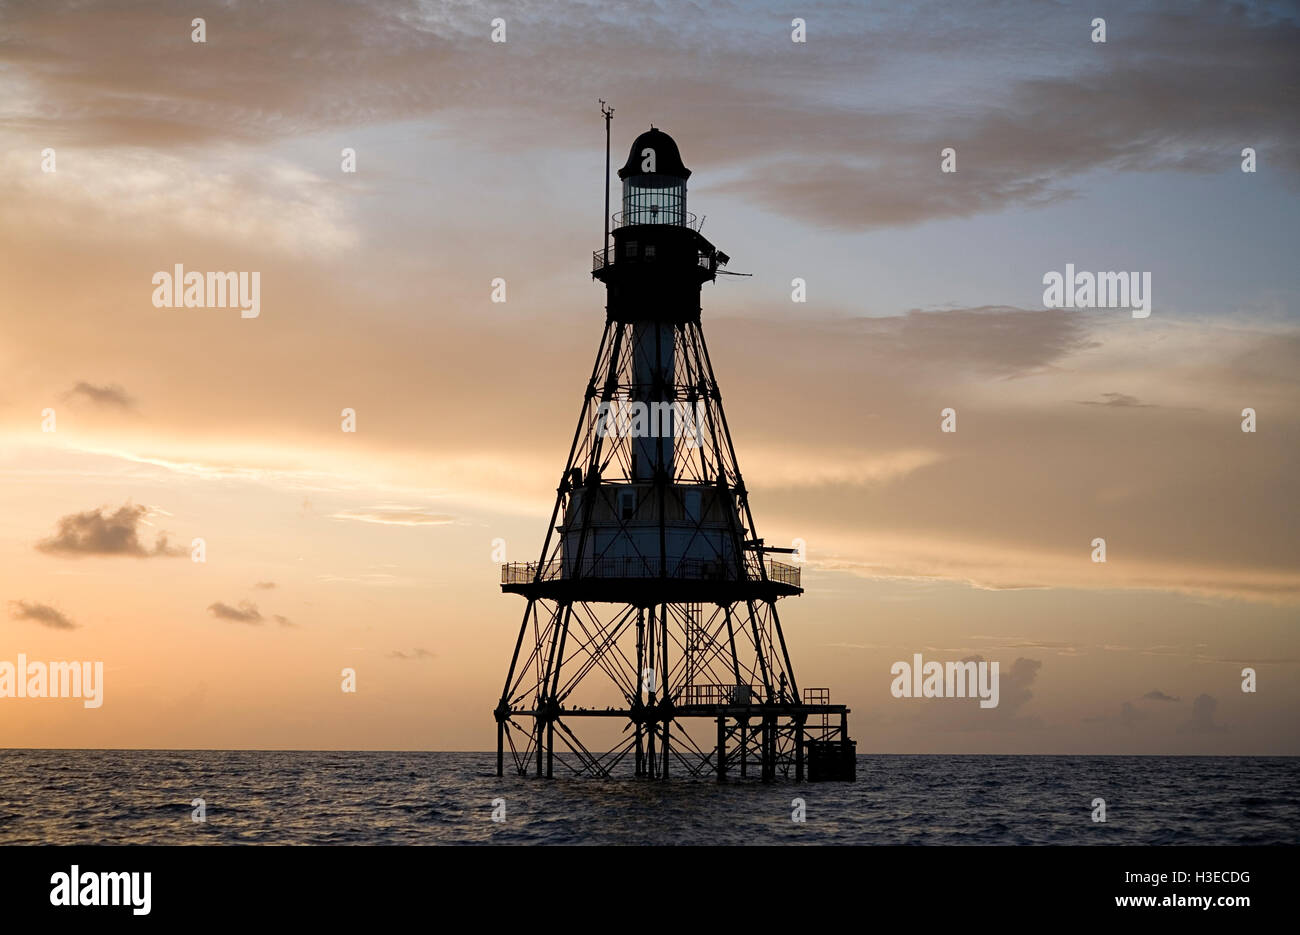 Fowey Rocks Lighthouse, one of Florida's 6 reef lights, is silhouetted against the peach-colored skies of a - Stock Image